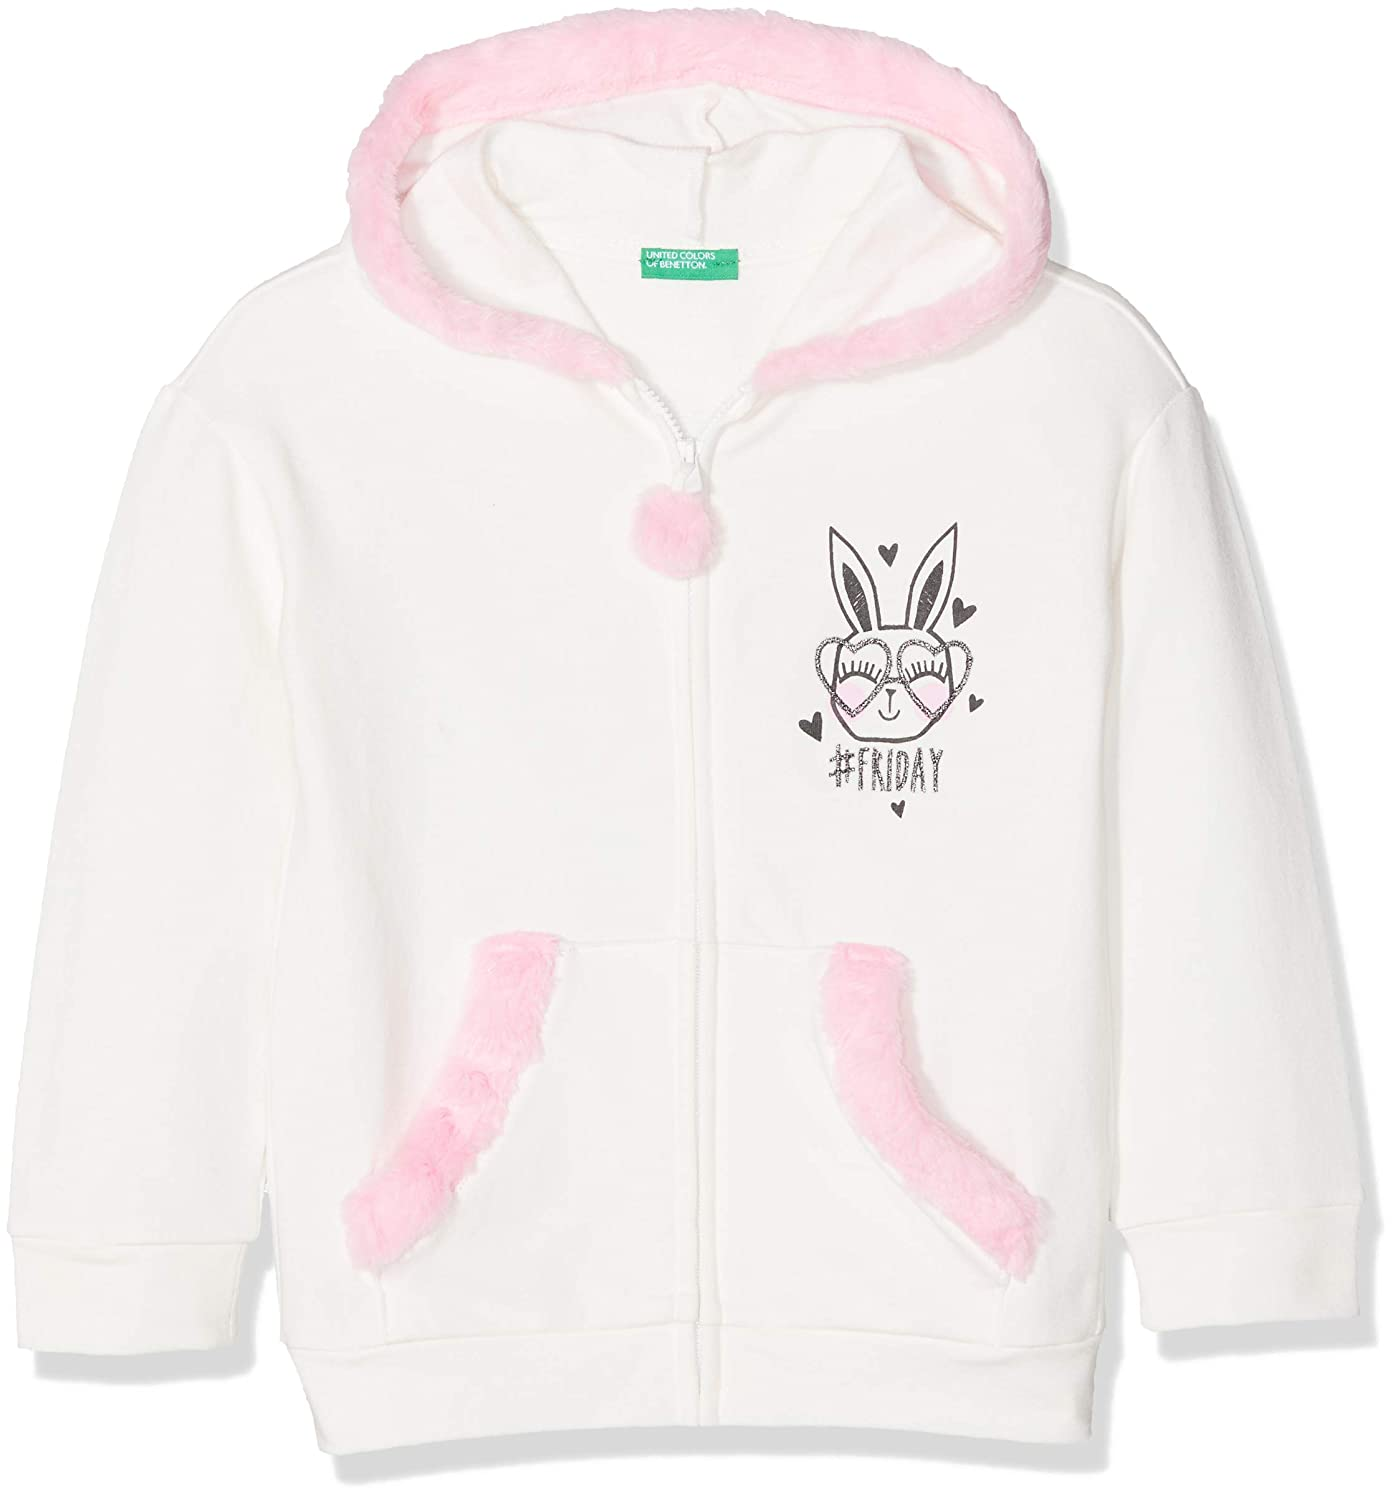 United Colors of Benetton Jacket W/Hood L/S, Giacca Bambina 3ZM9C51UP